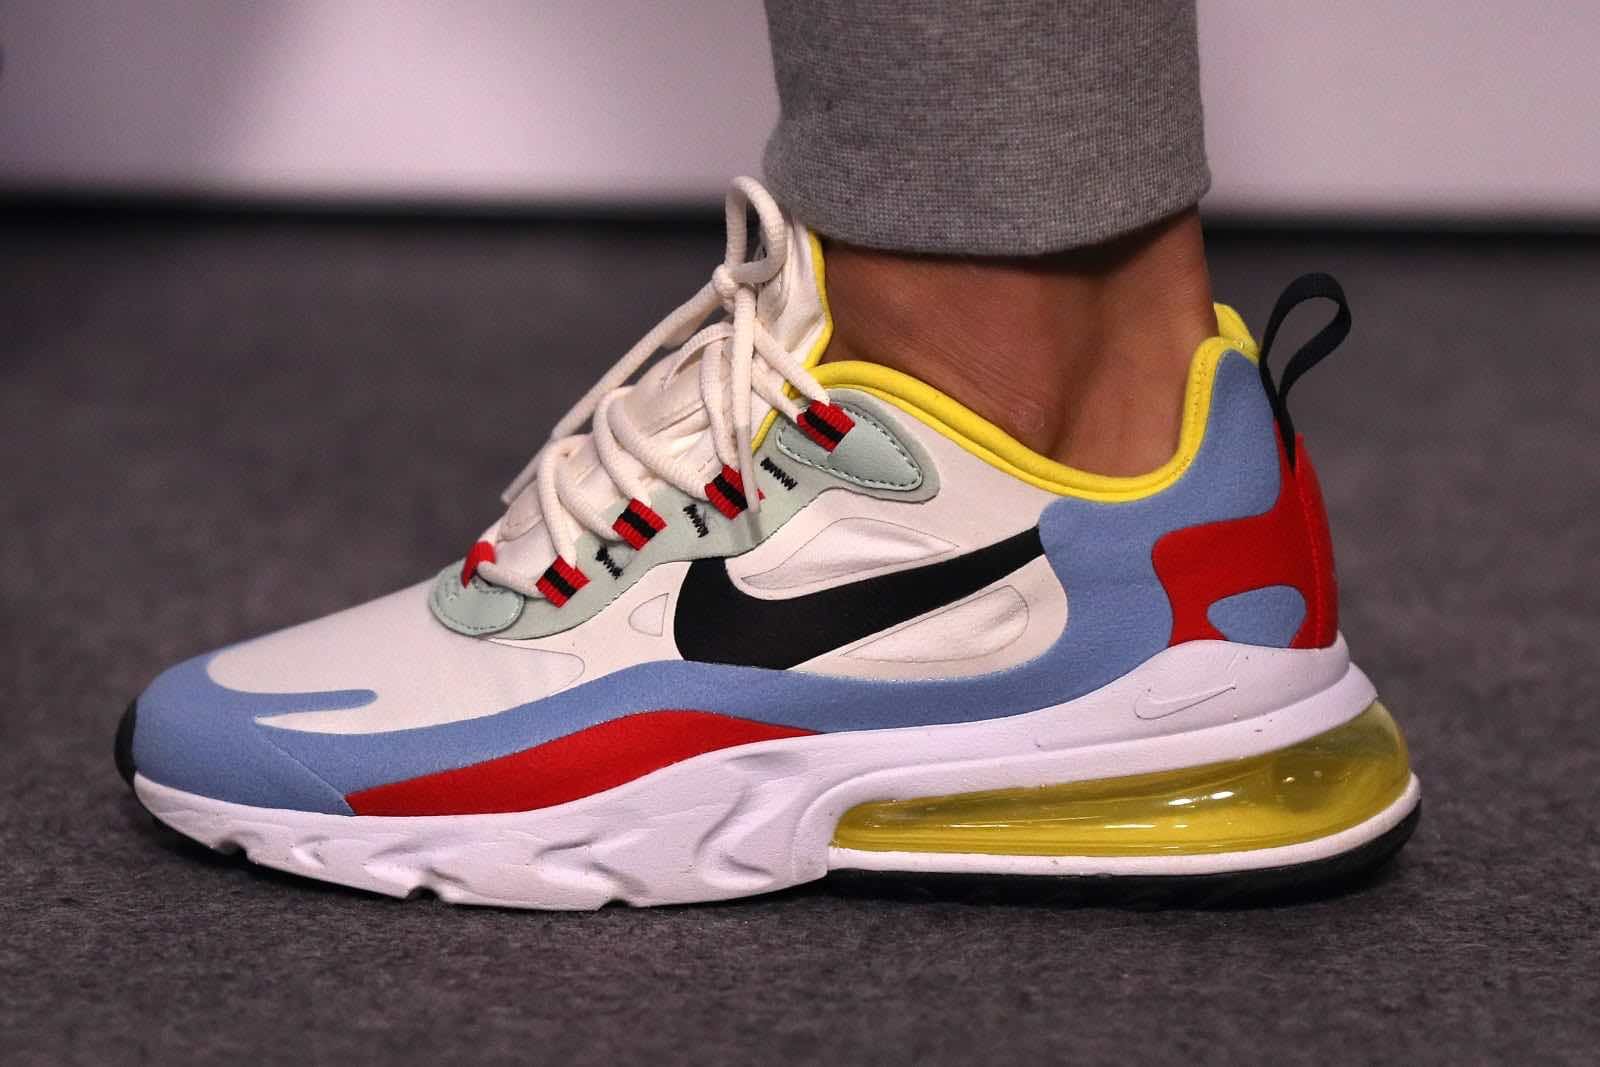 Sneak Peek: Nike Air Max 270 React